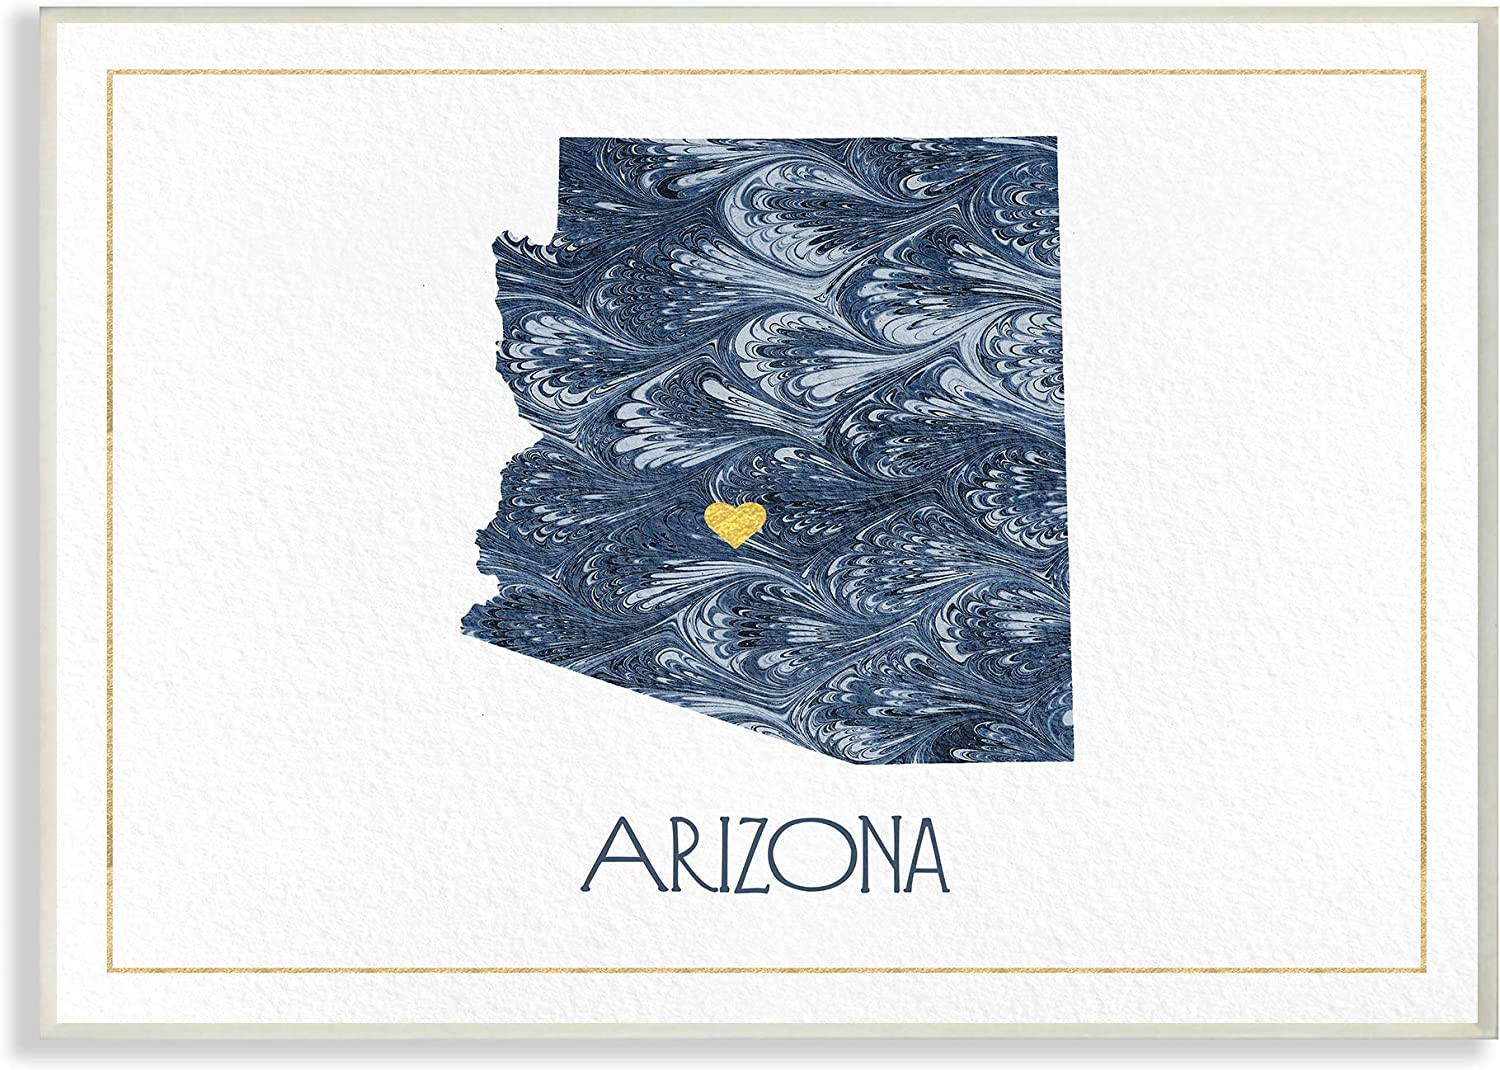 The Stupell Home Decor Arizona Minimal bluee Marbled Paper Silhouette Wall Plaque Art, 13 X 19, Multi-color